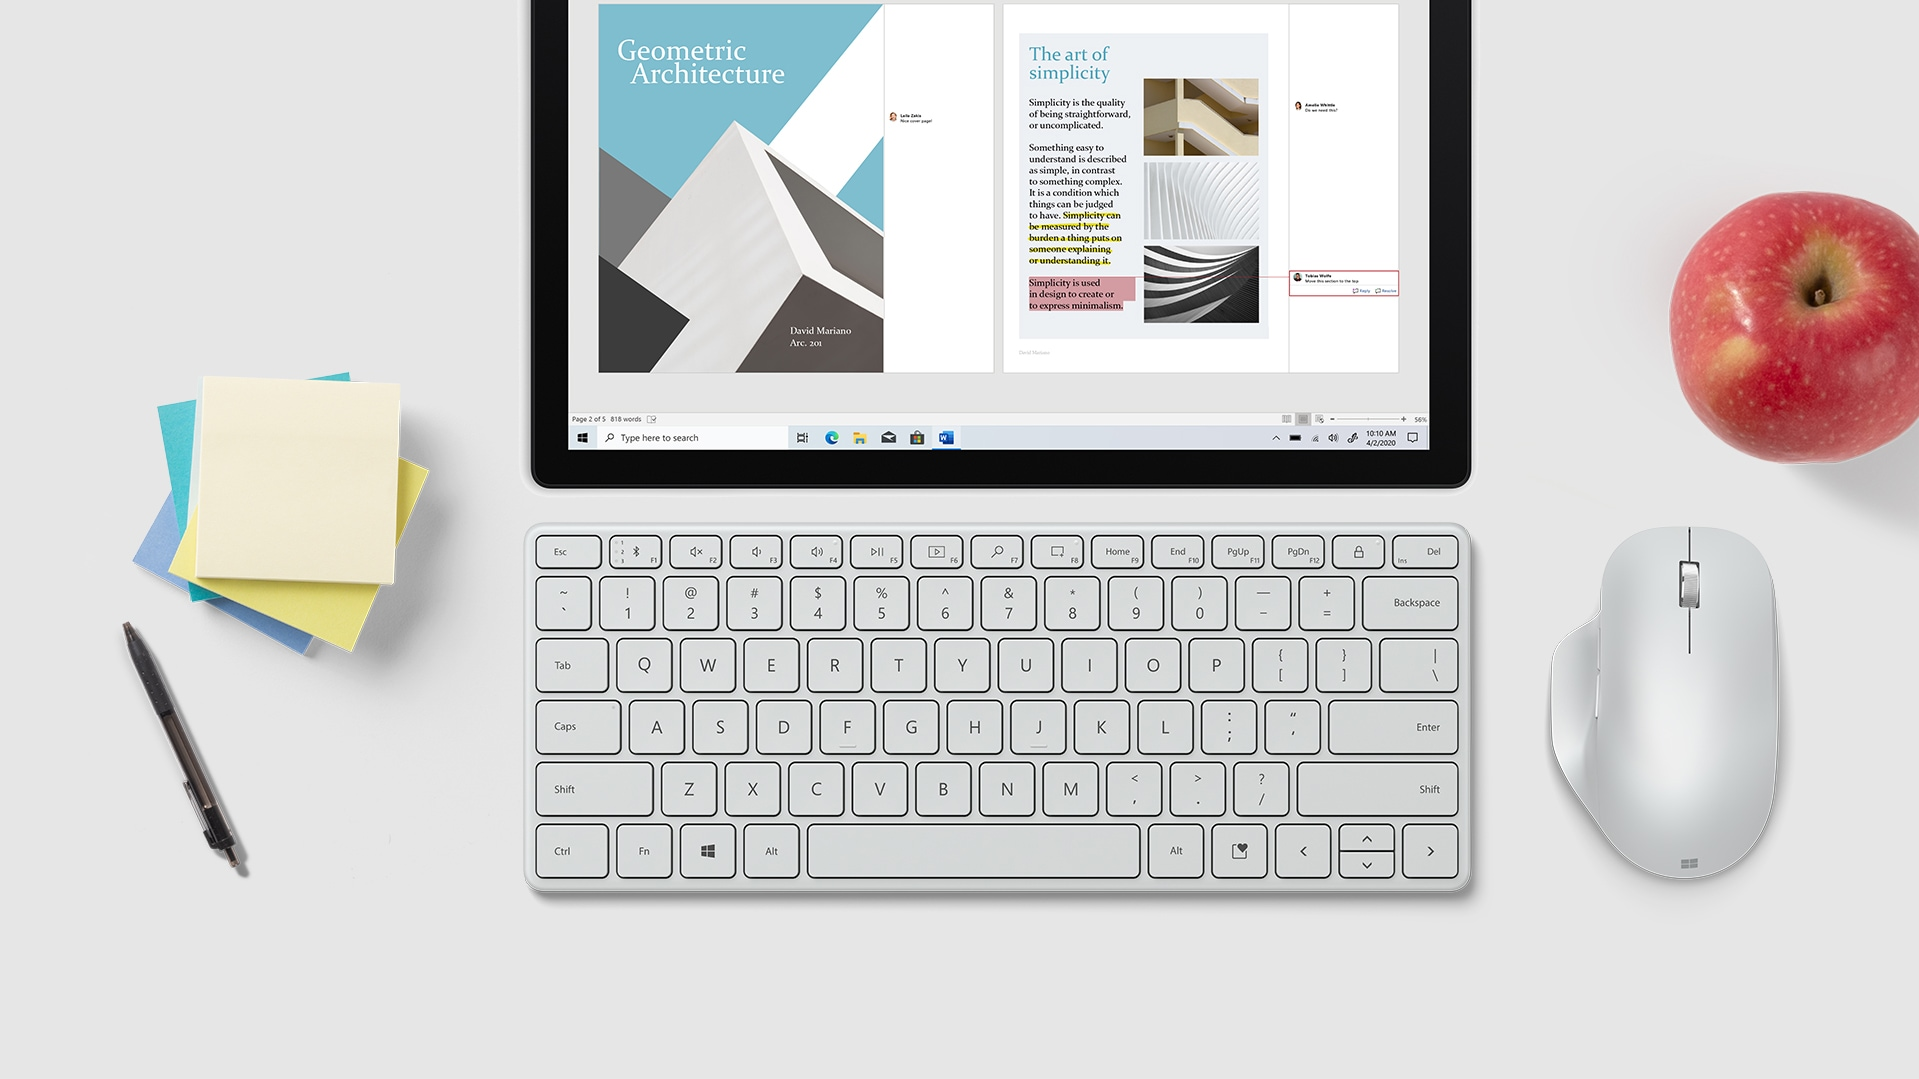 Microsoft Designer Compact Keyboard sits in front on a tablet screen next to a Microsoft mouse, pieces of paper, and pen.